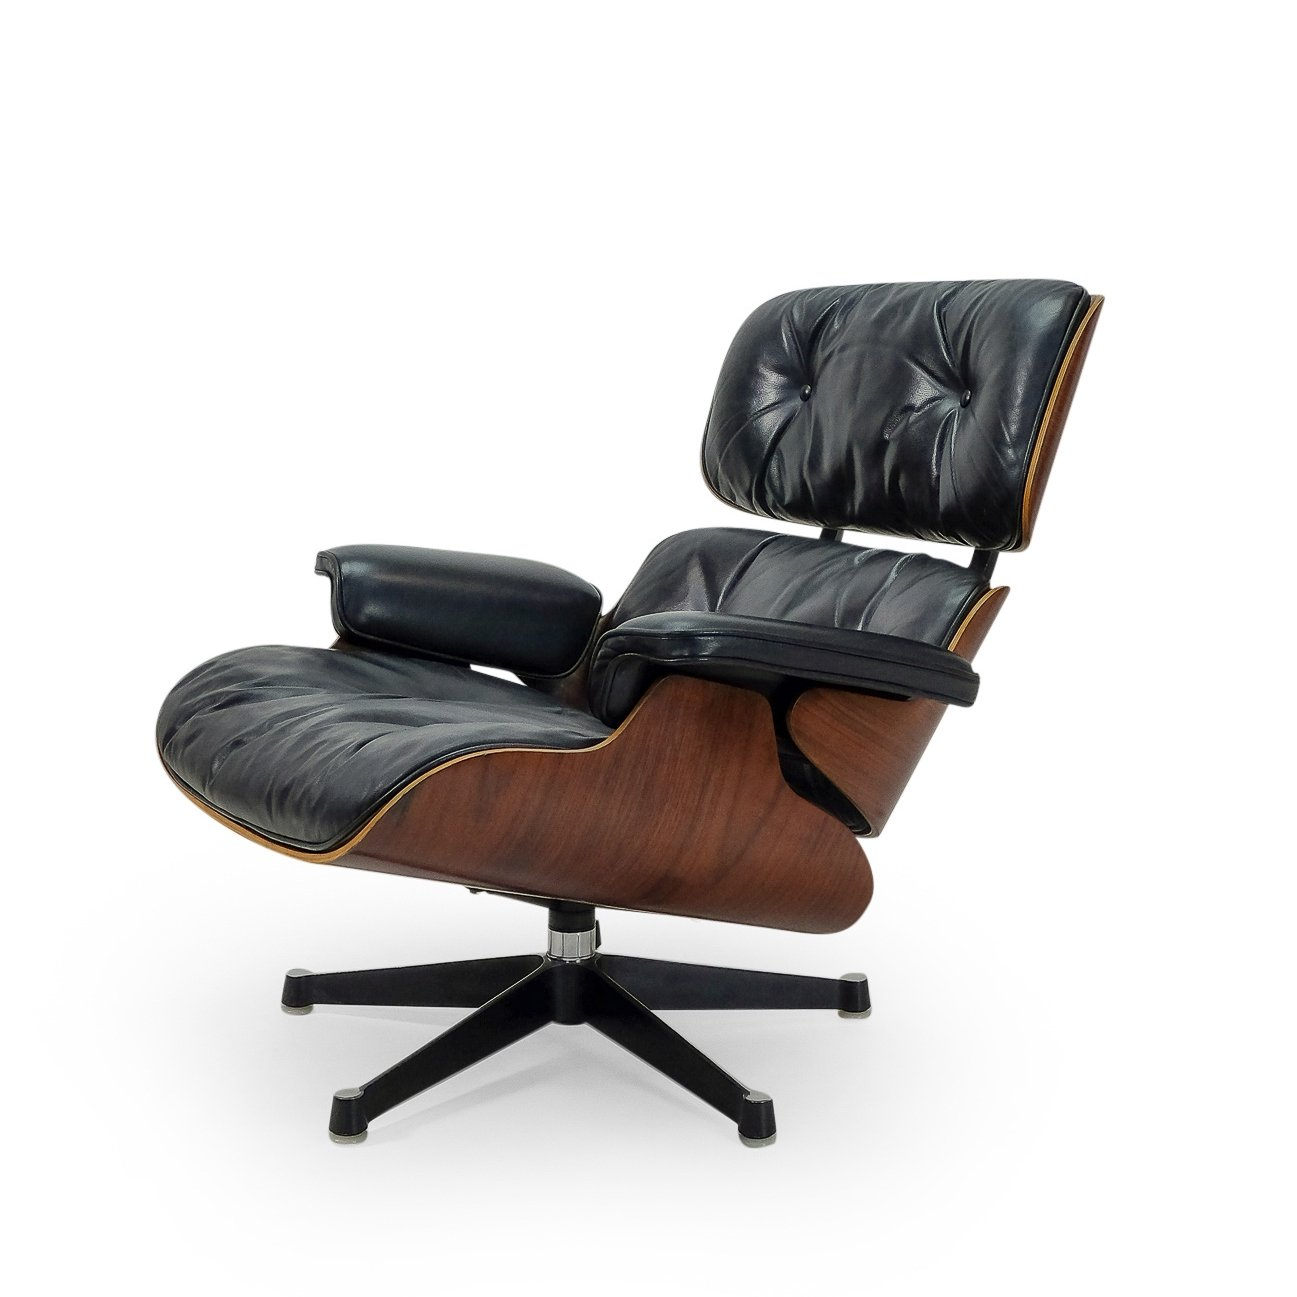 By Eames Early Vitra1960s102526 Lounge Chair 2W9IYEDH